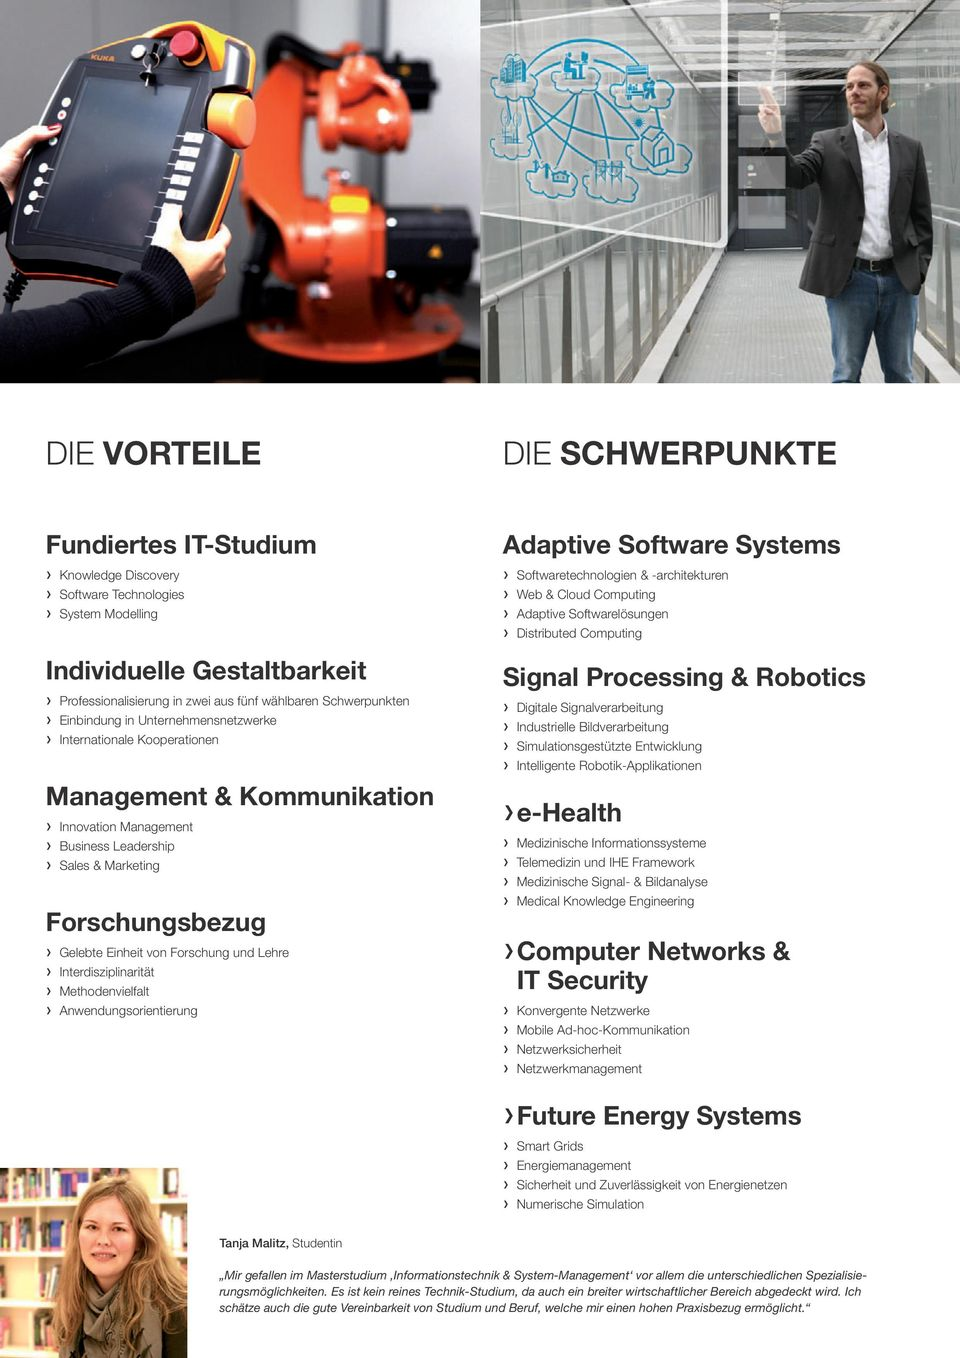 von Forschung und Lehre Interdisziplinarität Methodenvielfalt Anwendungsorientierung Adaptive Software Systems Softwaretechnologien & -architekturen Web & Cloud Computing Adaptive Softwarelösungen